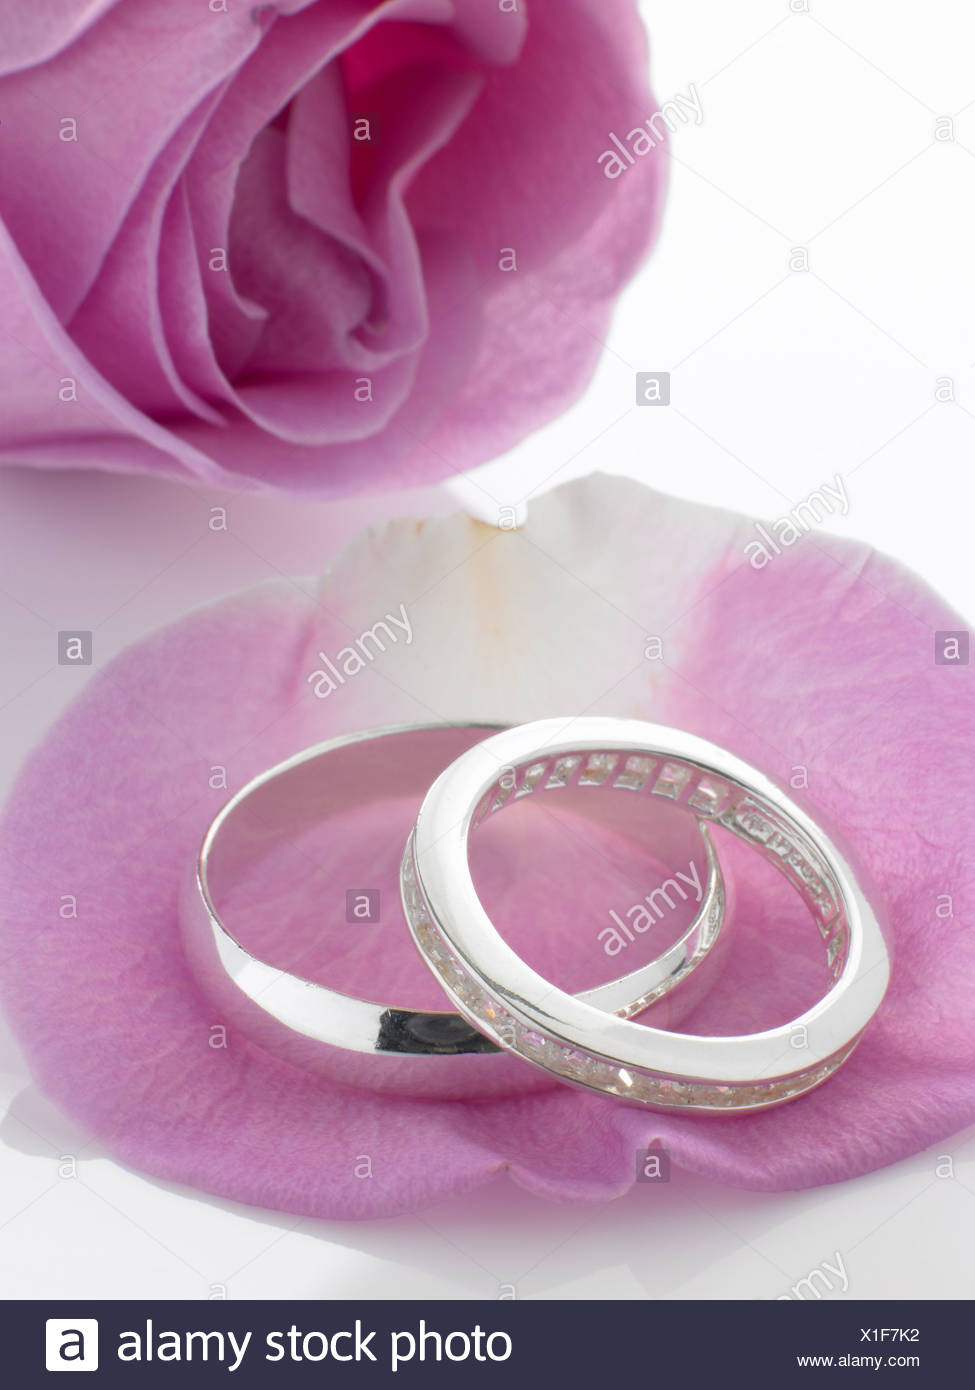 Silver Wedding Rings Resting On Rose Petals Stock Photo: 276315846 ...